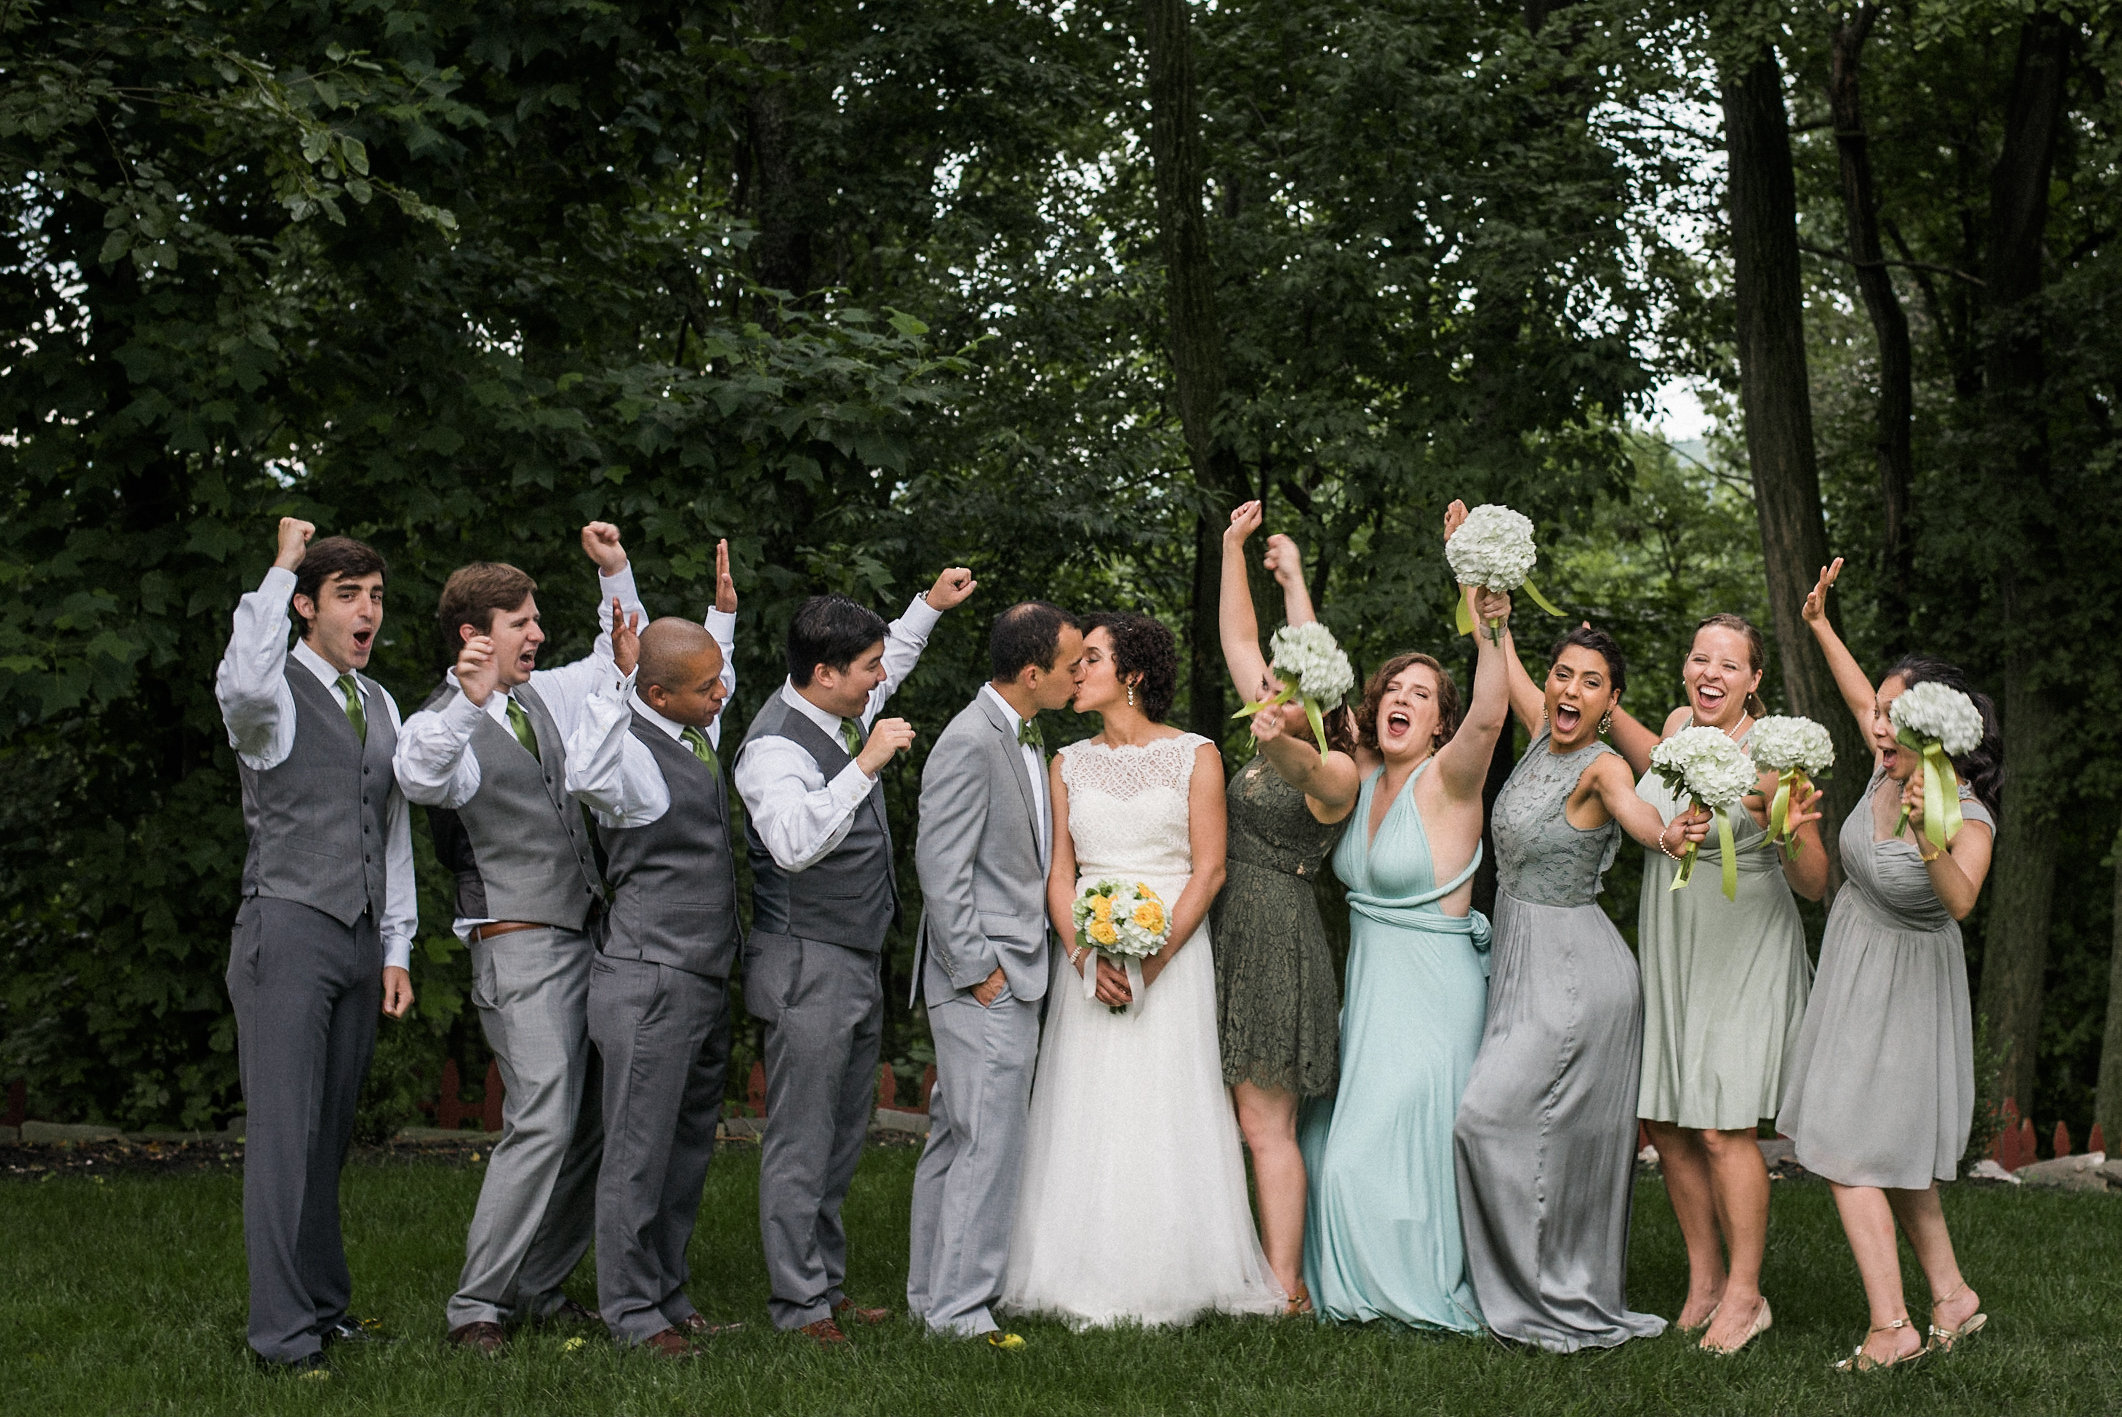 Groom and bride kissing in front of bridal party